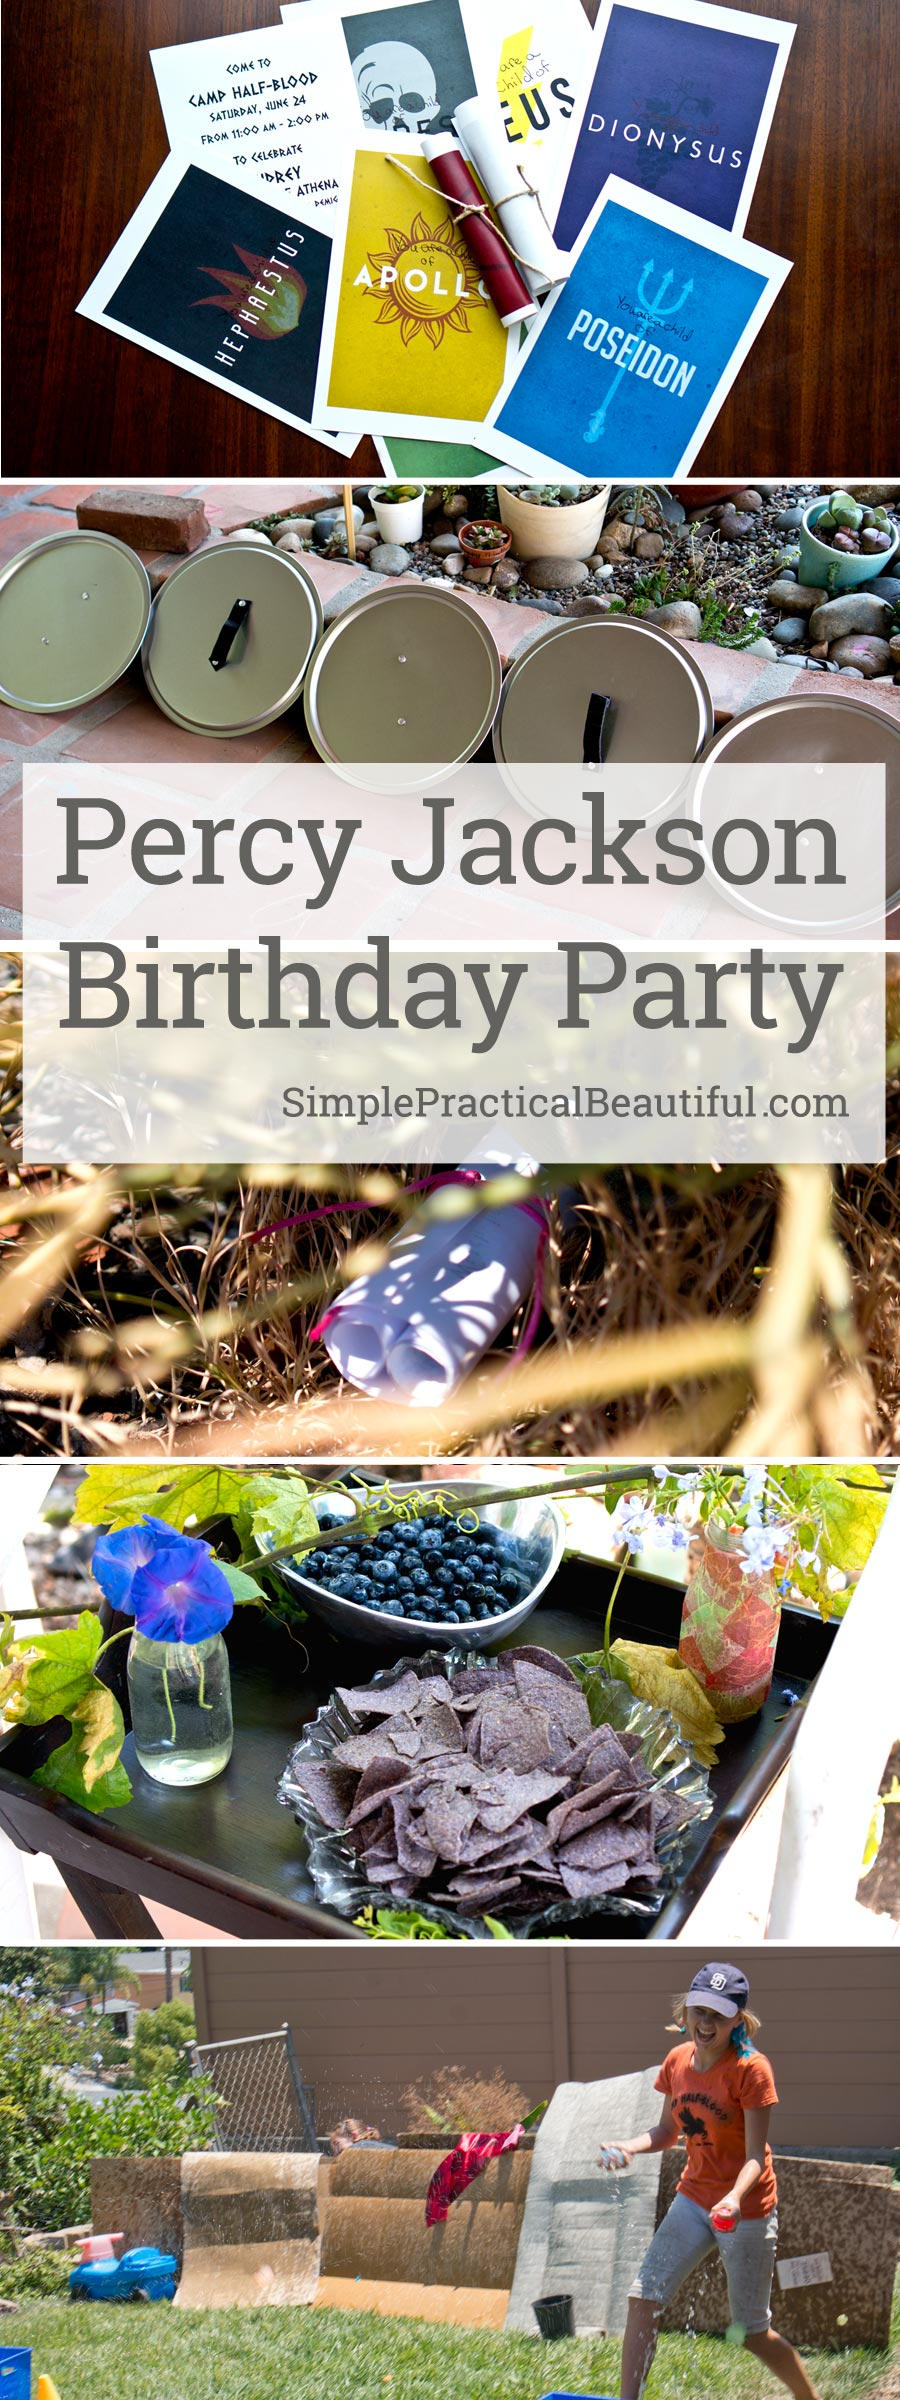 Percy Jackson Party Simple Practical Beautiful